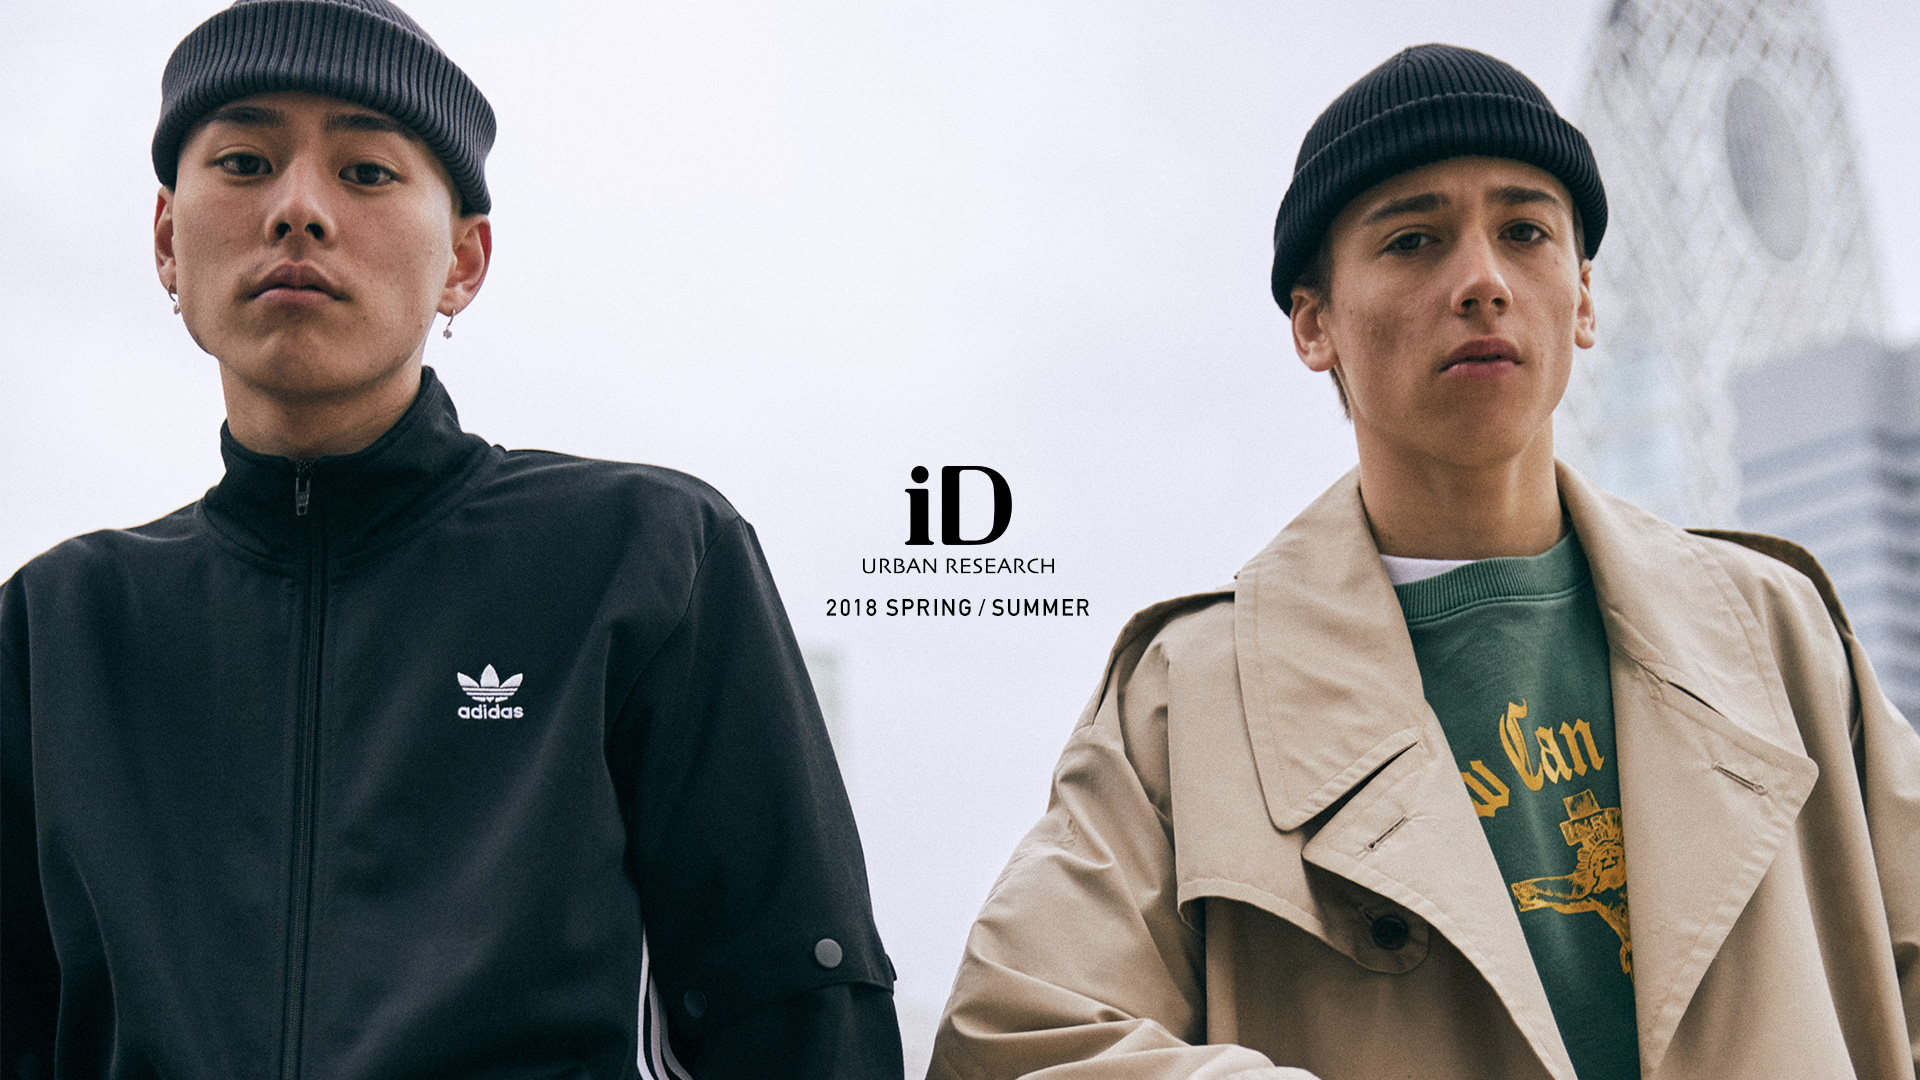 URBAN RESEARCH iD 2018 SPRING / SUMMER